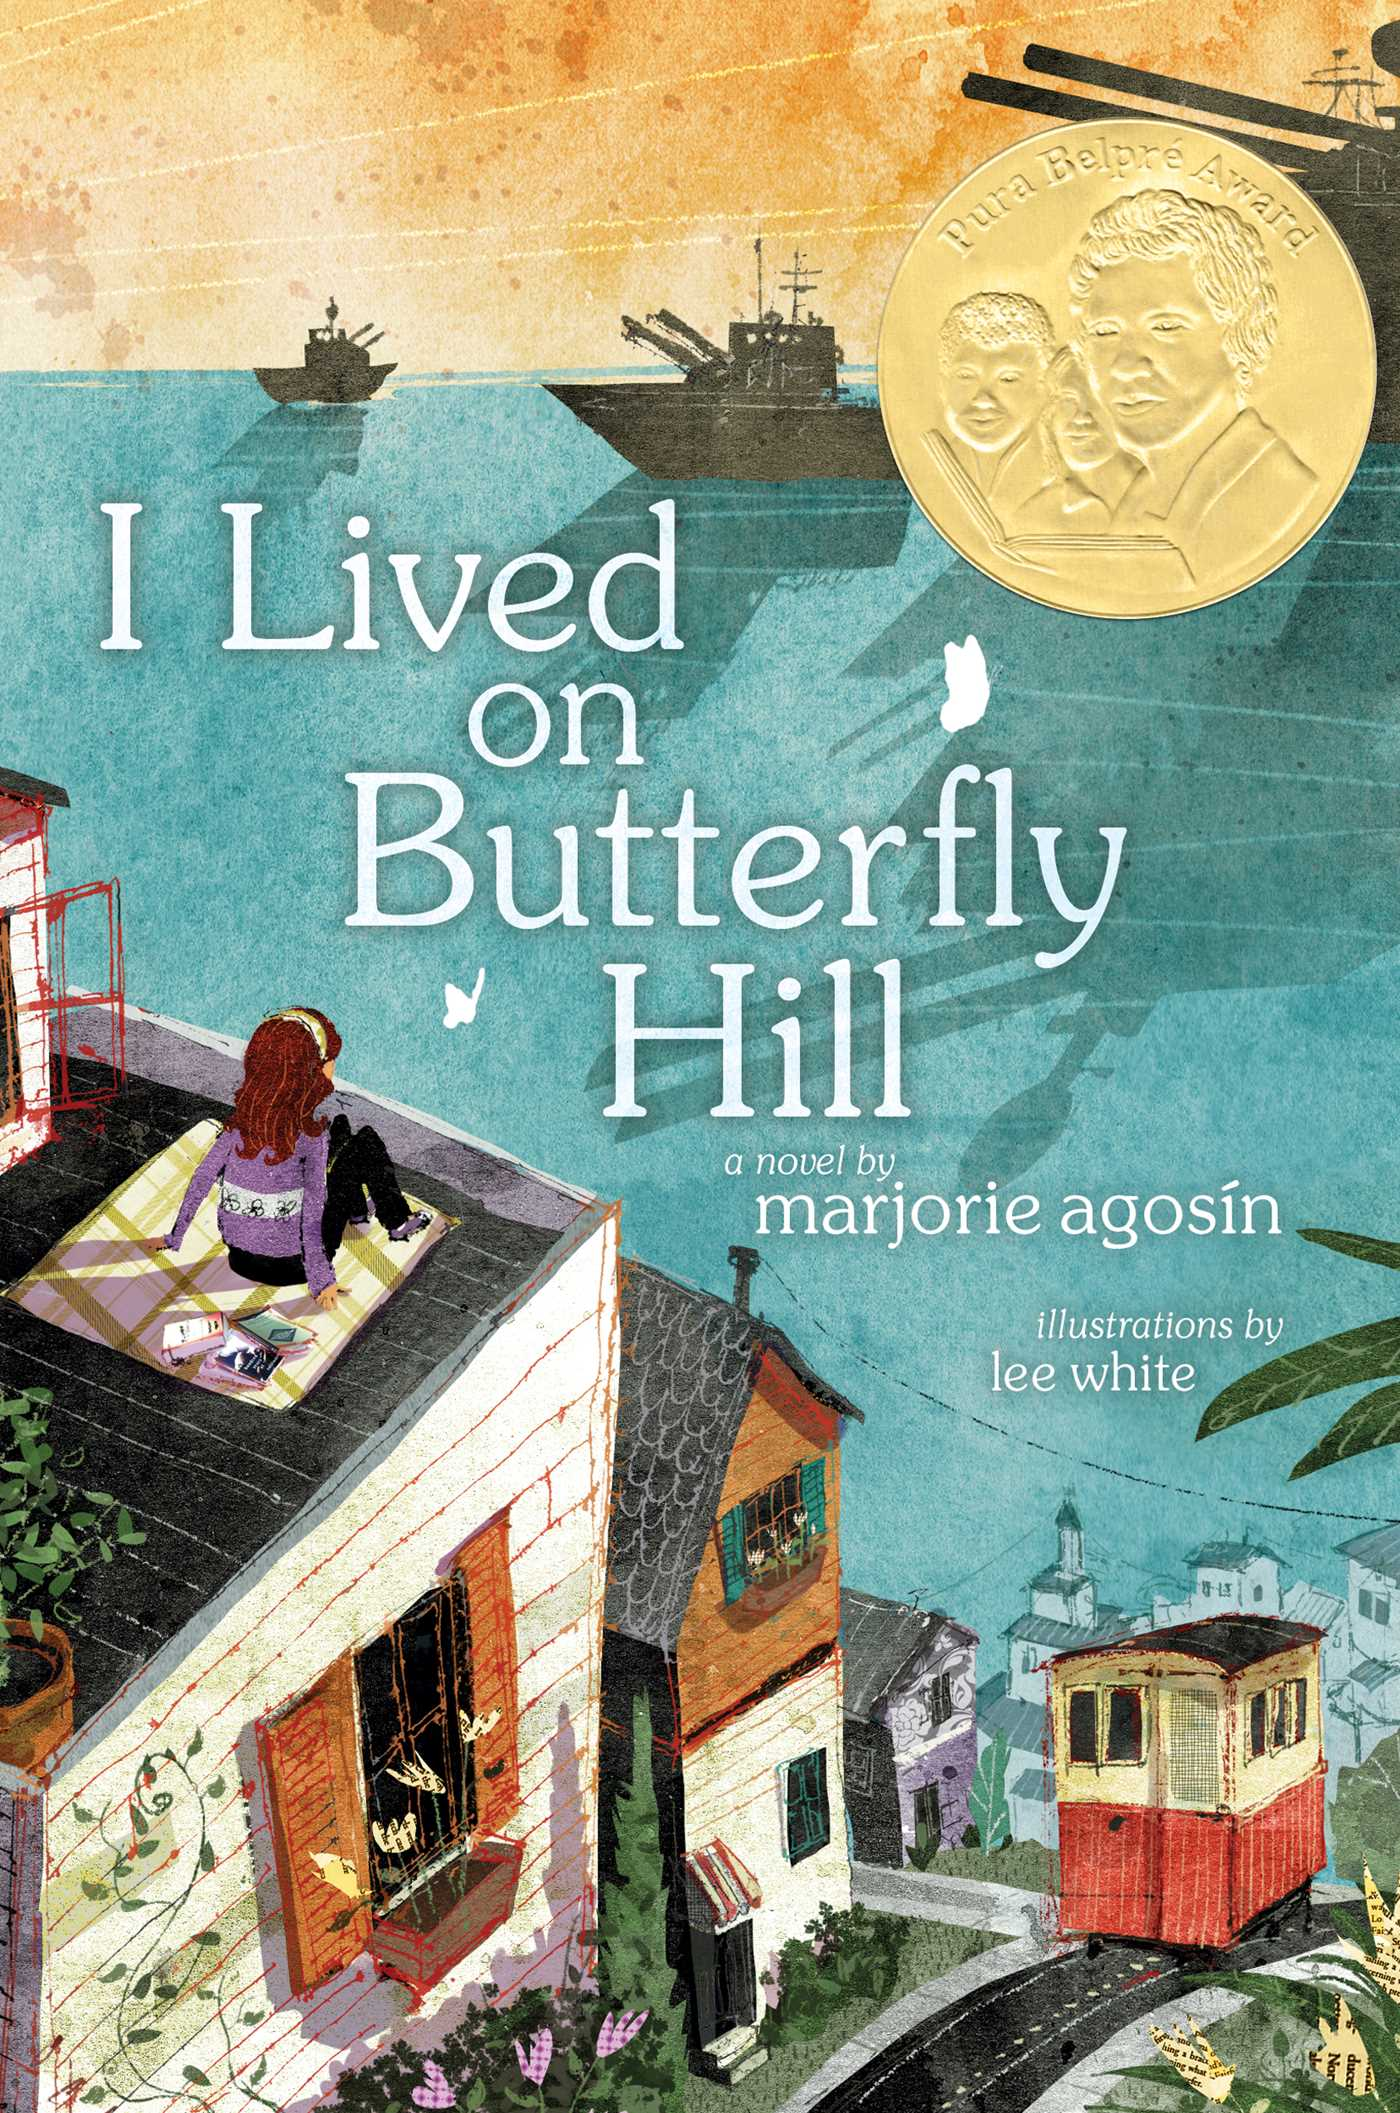 I lived on butterfly hill 9781416953449 hr